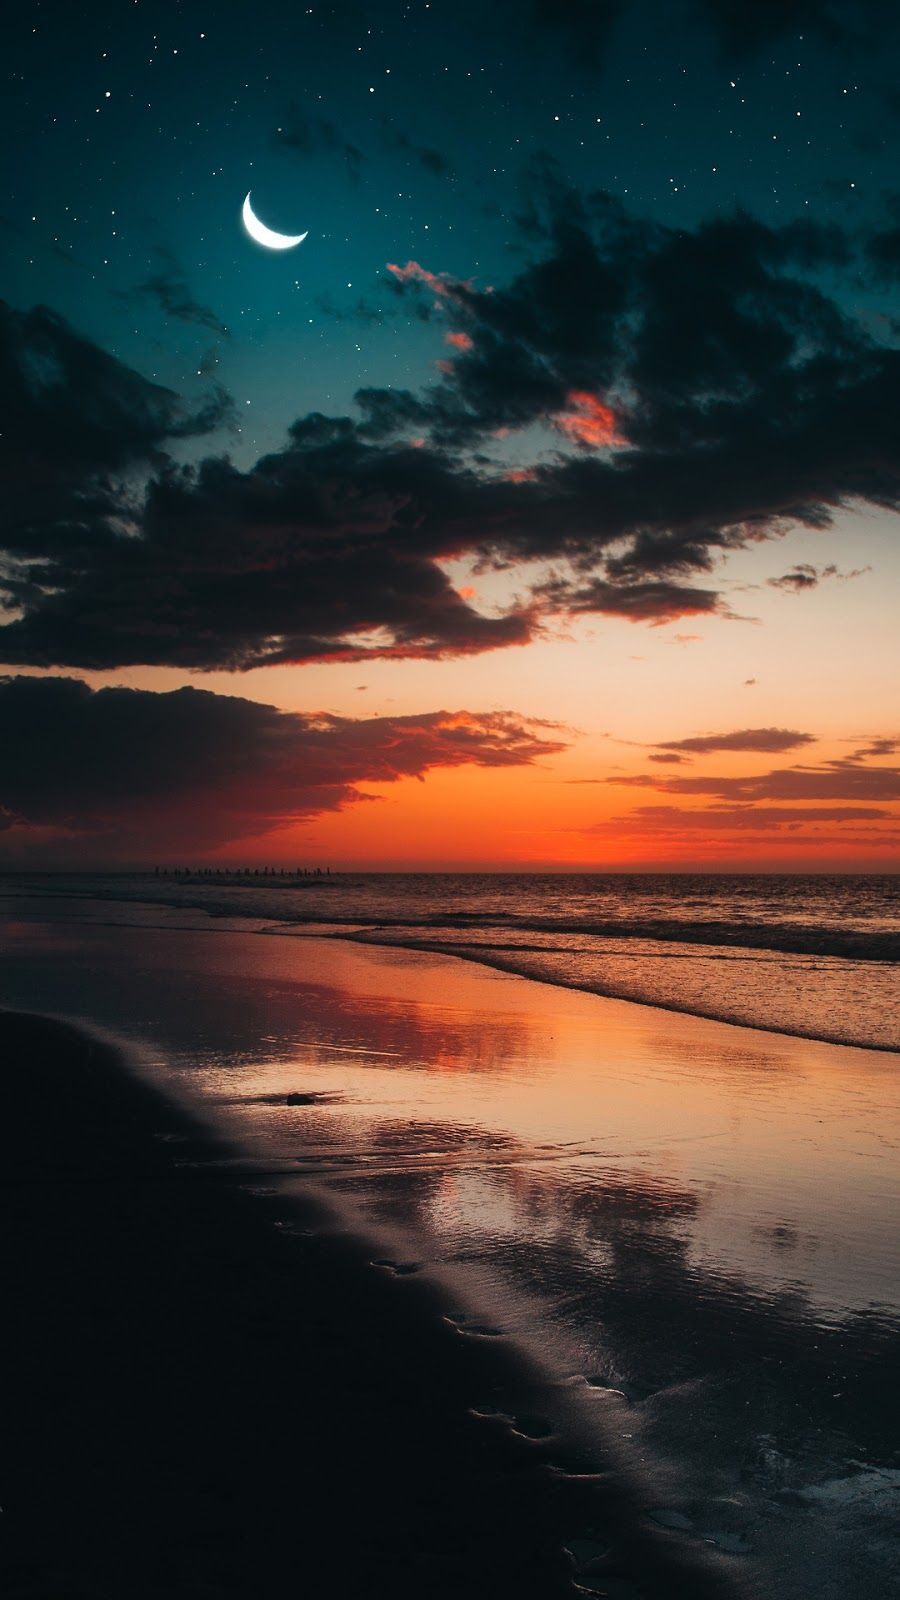 Beach In The Night Wallpaper Iphone Android Background Followme Nature Photography Landscape Photography Sky Aesthetic Evening beach scenery wallpaper